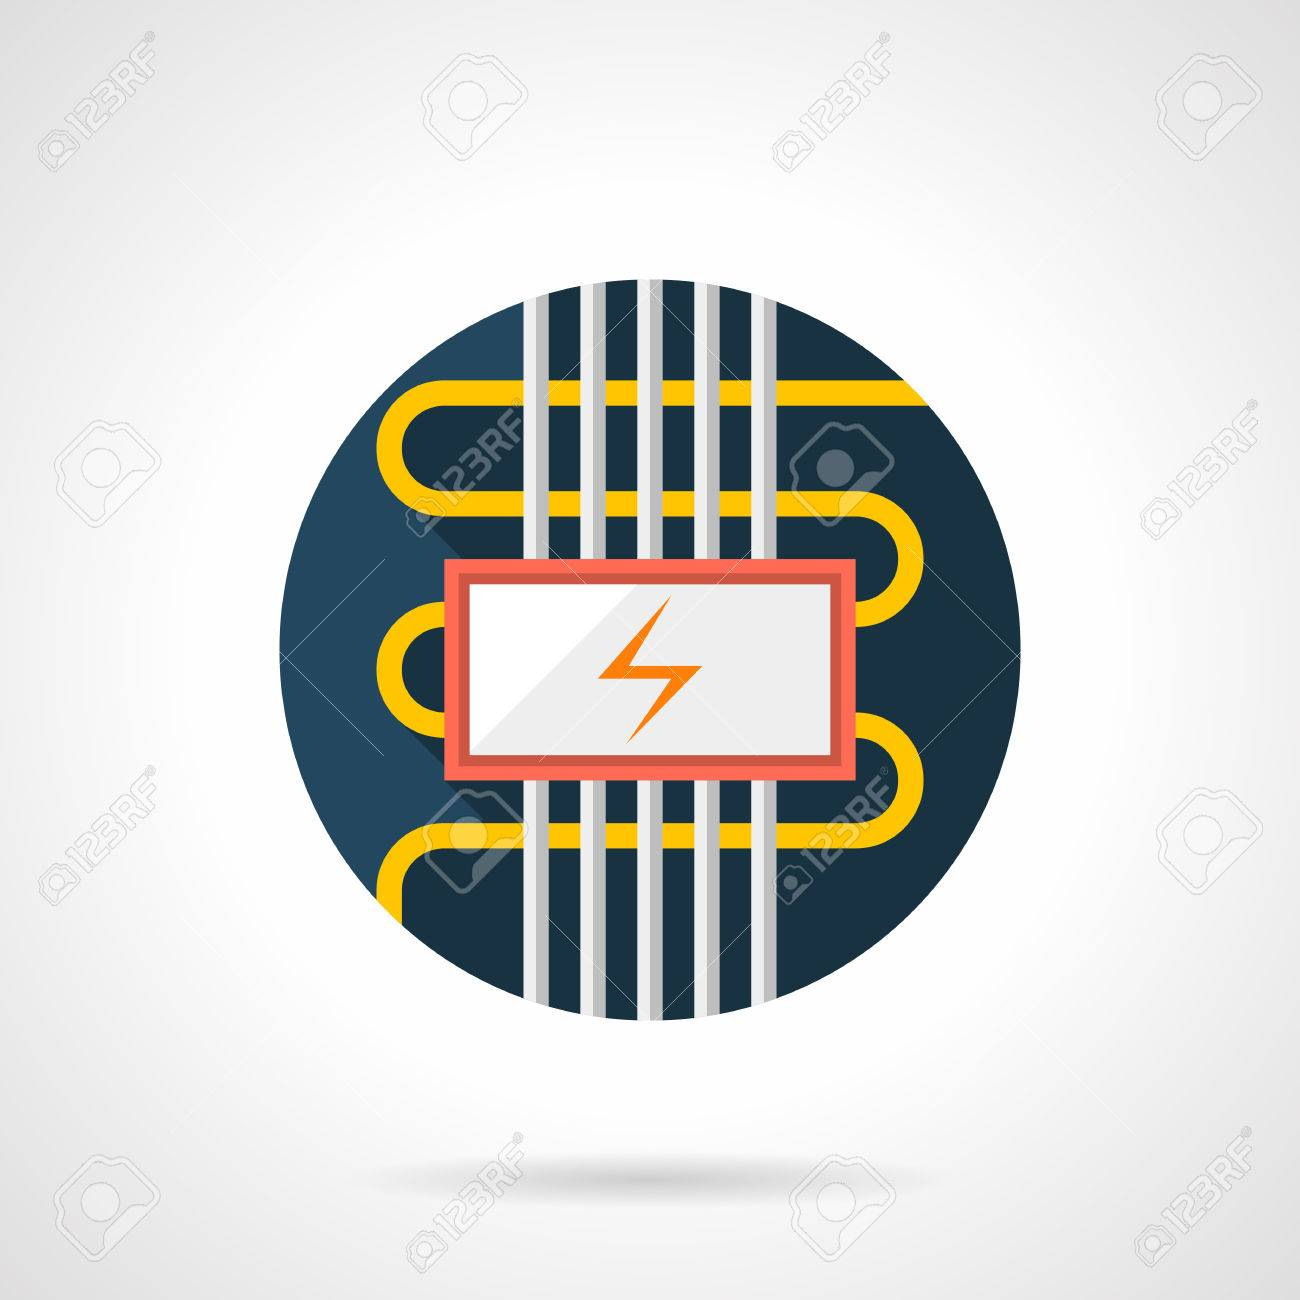 Cable Electric Floor Heating Symbol. Installing Services For ...